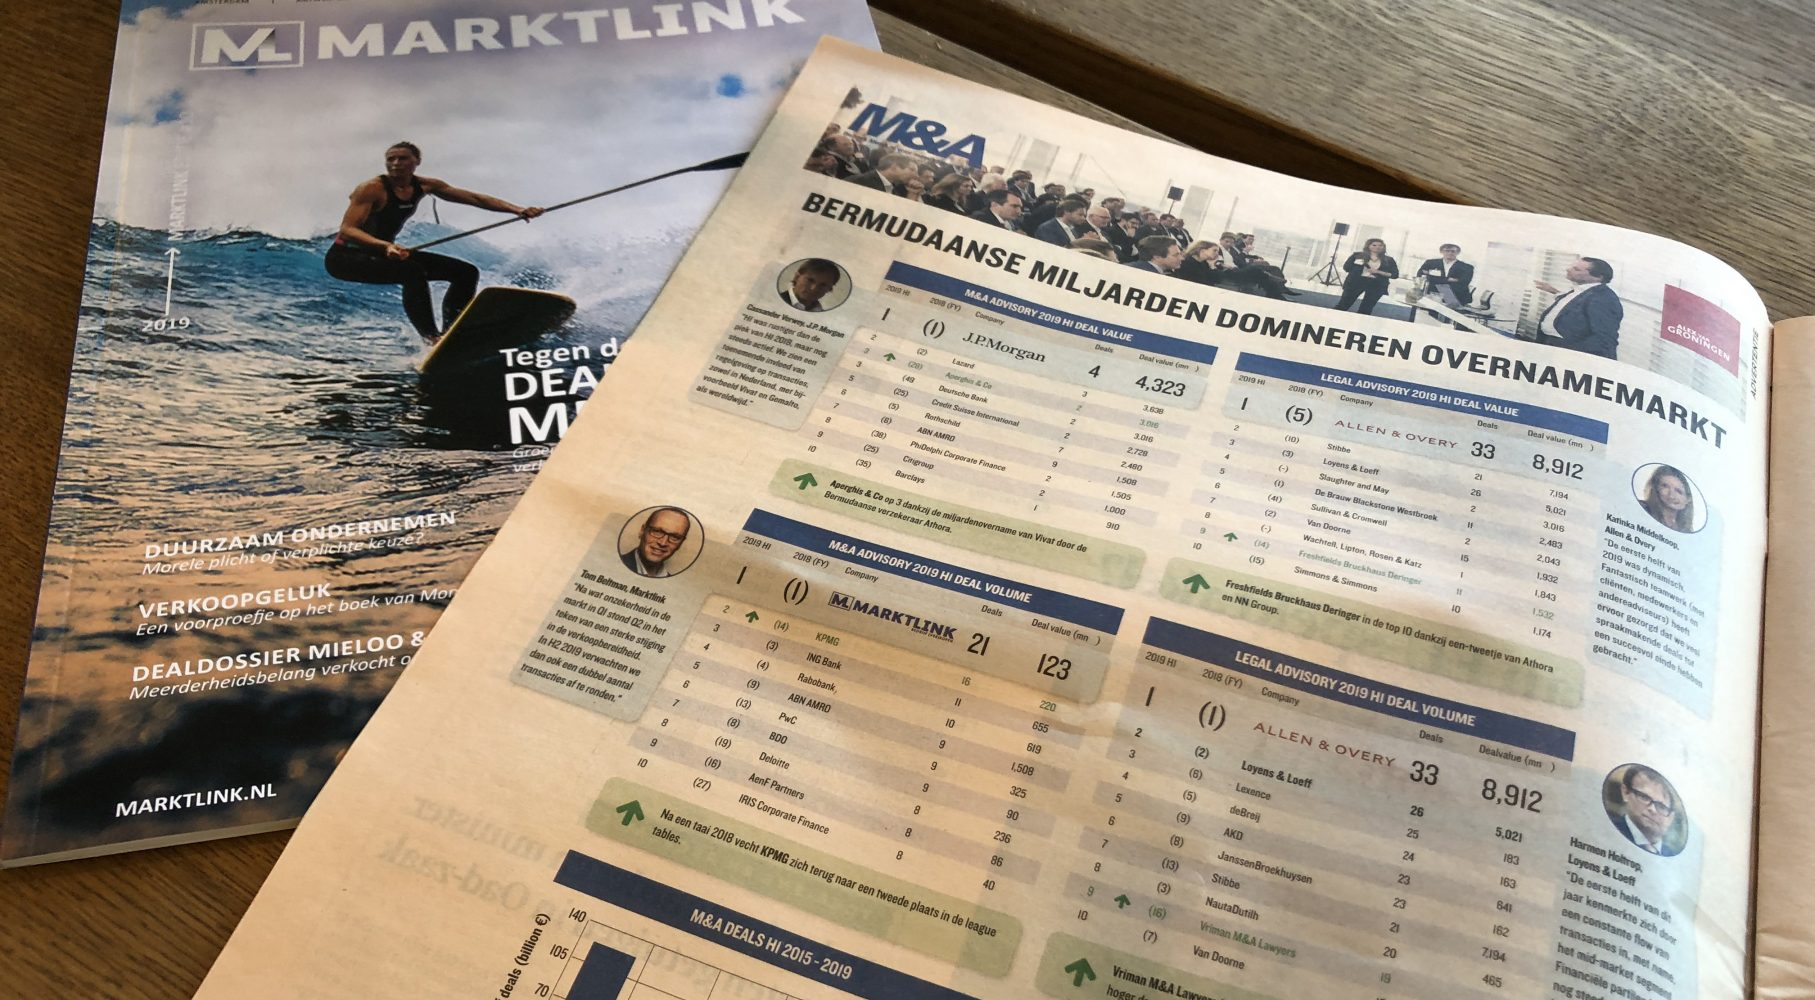 Marktlink tops M&A deal ranking